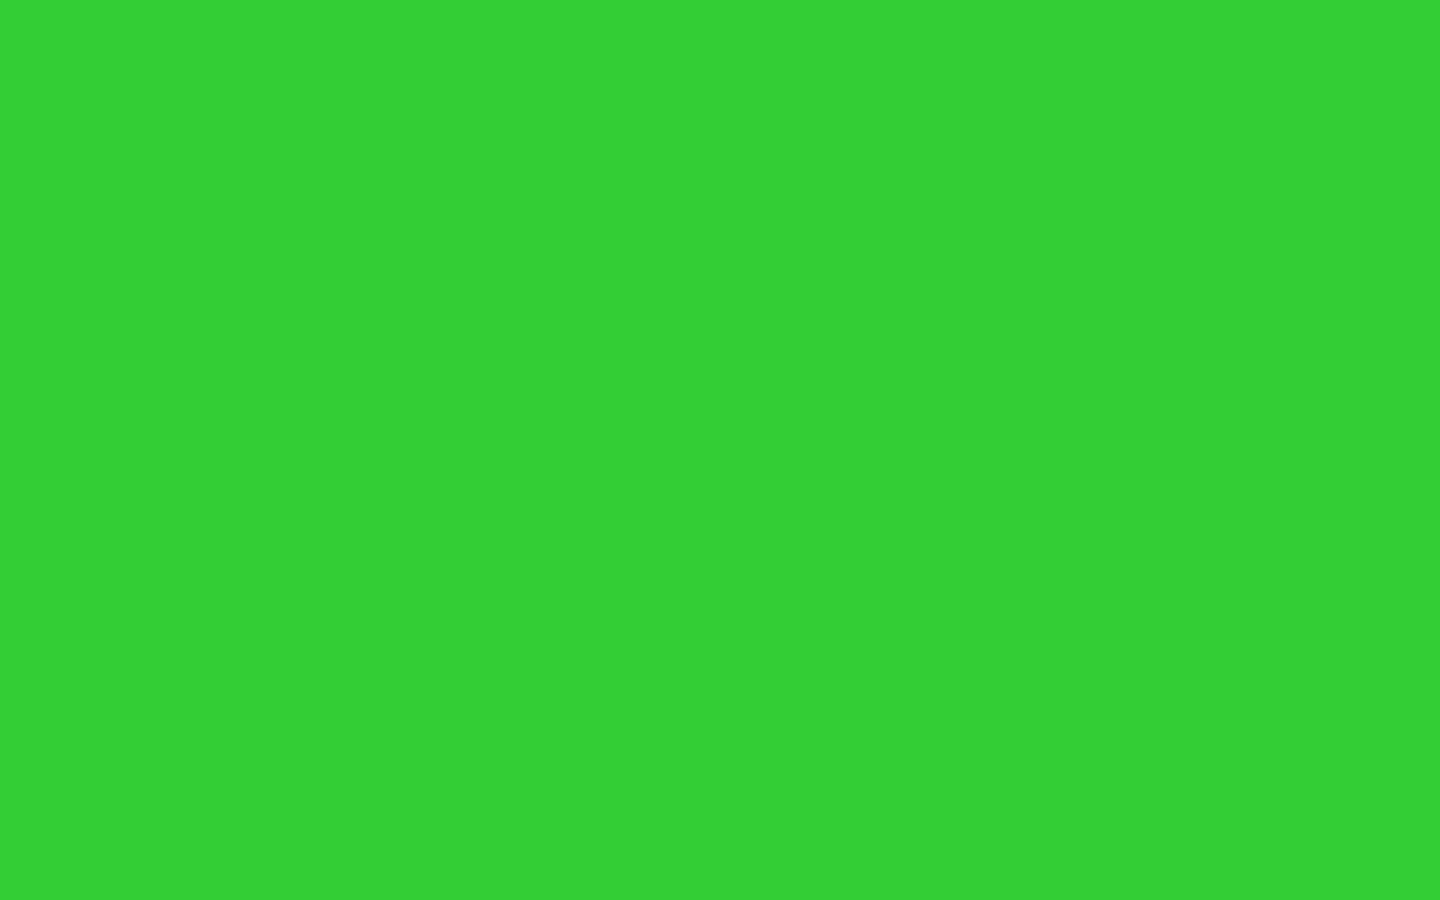 1440x900 lime green solid color background